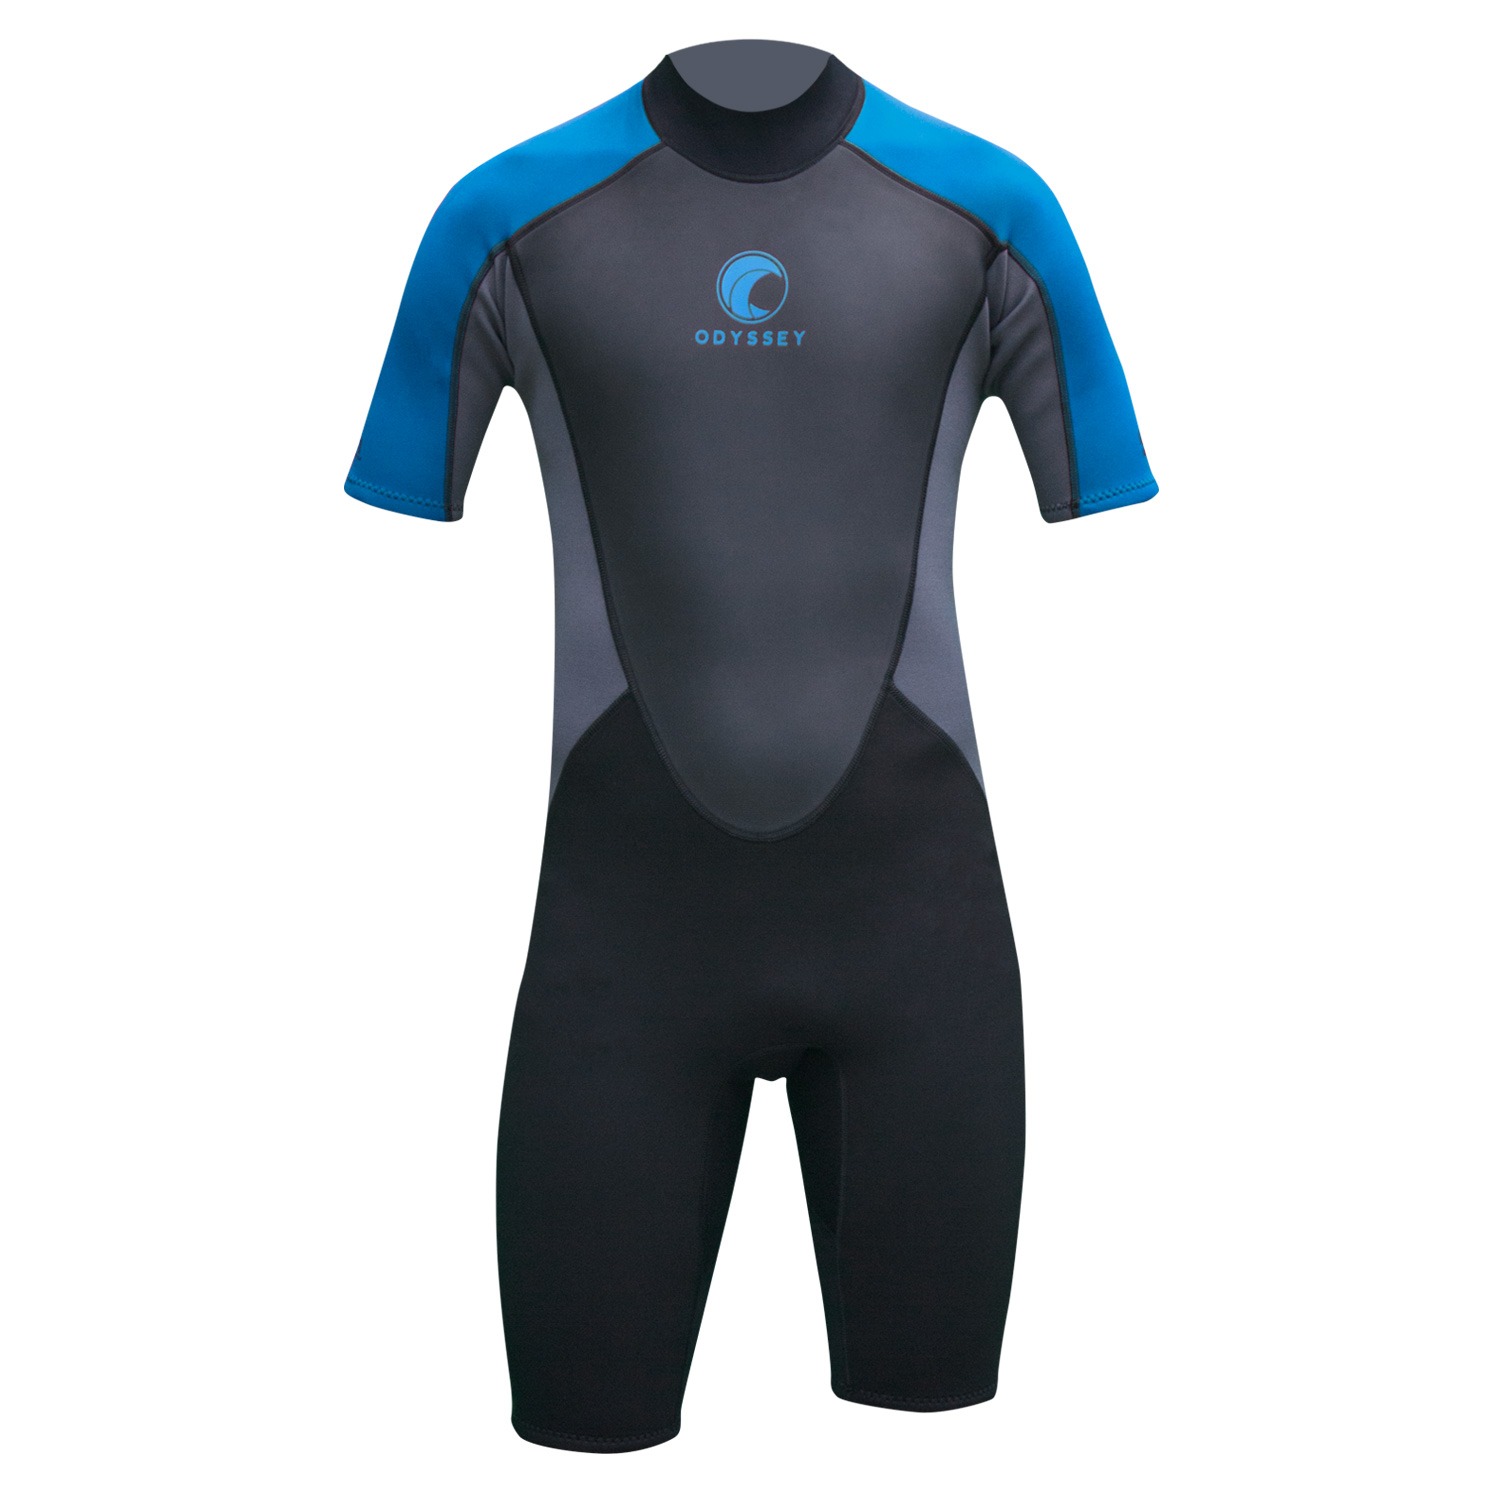 Odyssey-Core-3-2mm-Mens-Shorty-Wetsuit-Surf-Swim-Kayak-Shortie-Wet-Suit-S-XXL thumbnail 12